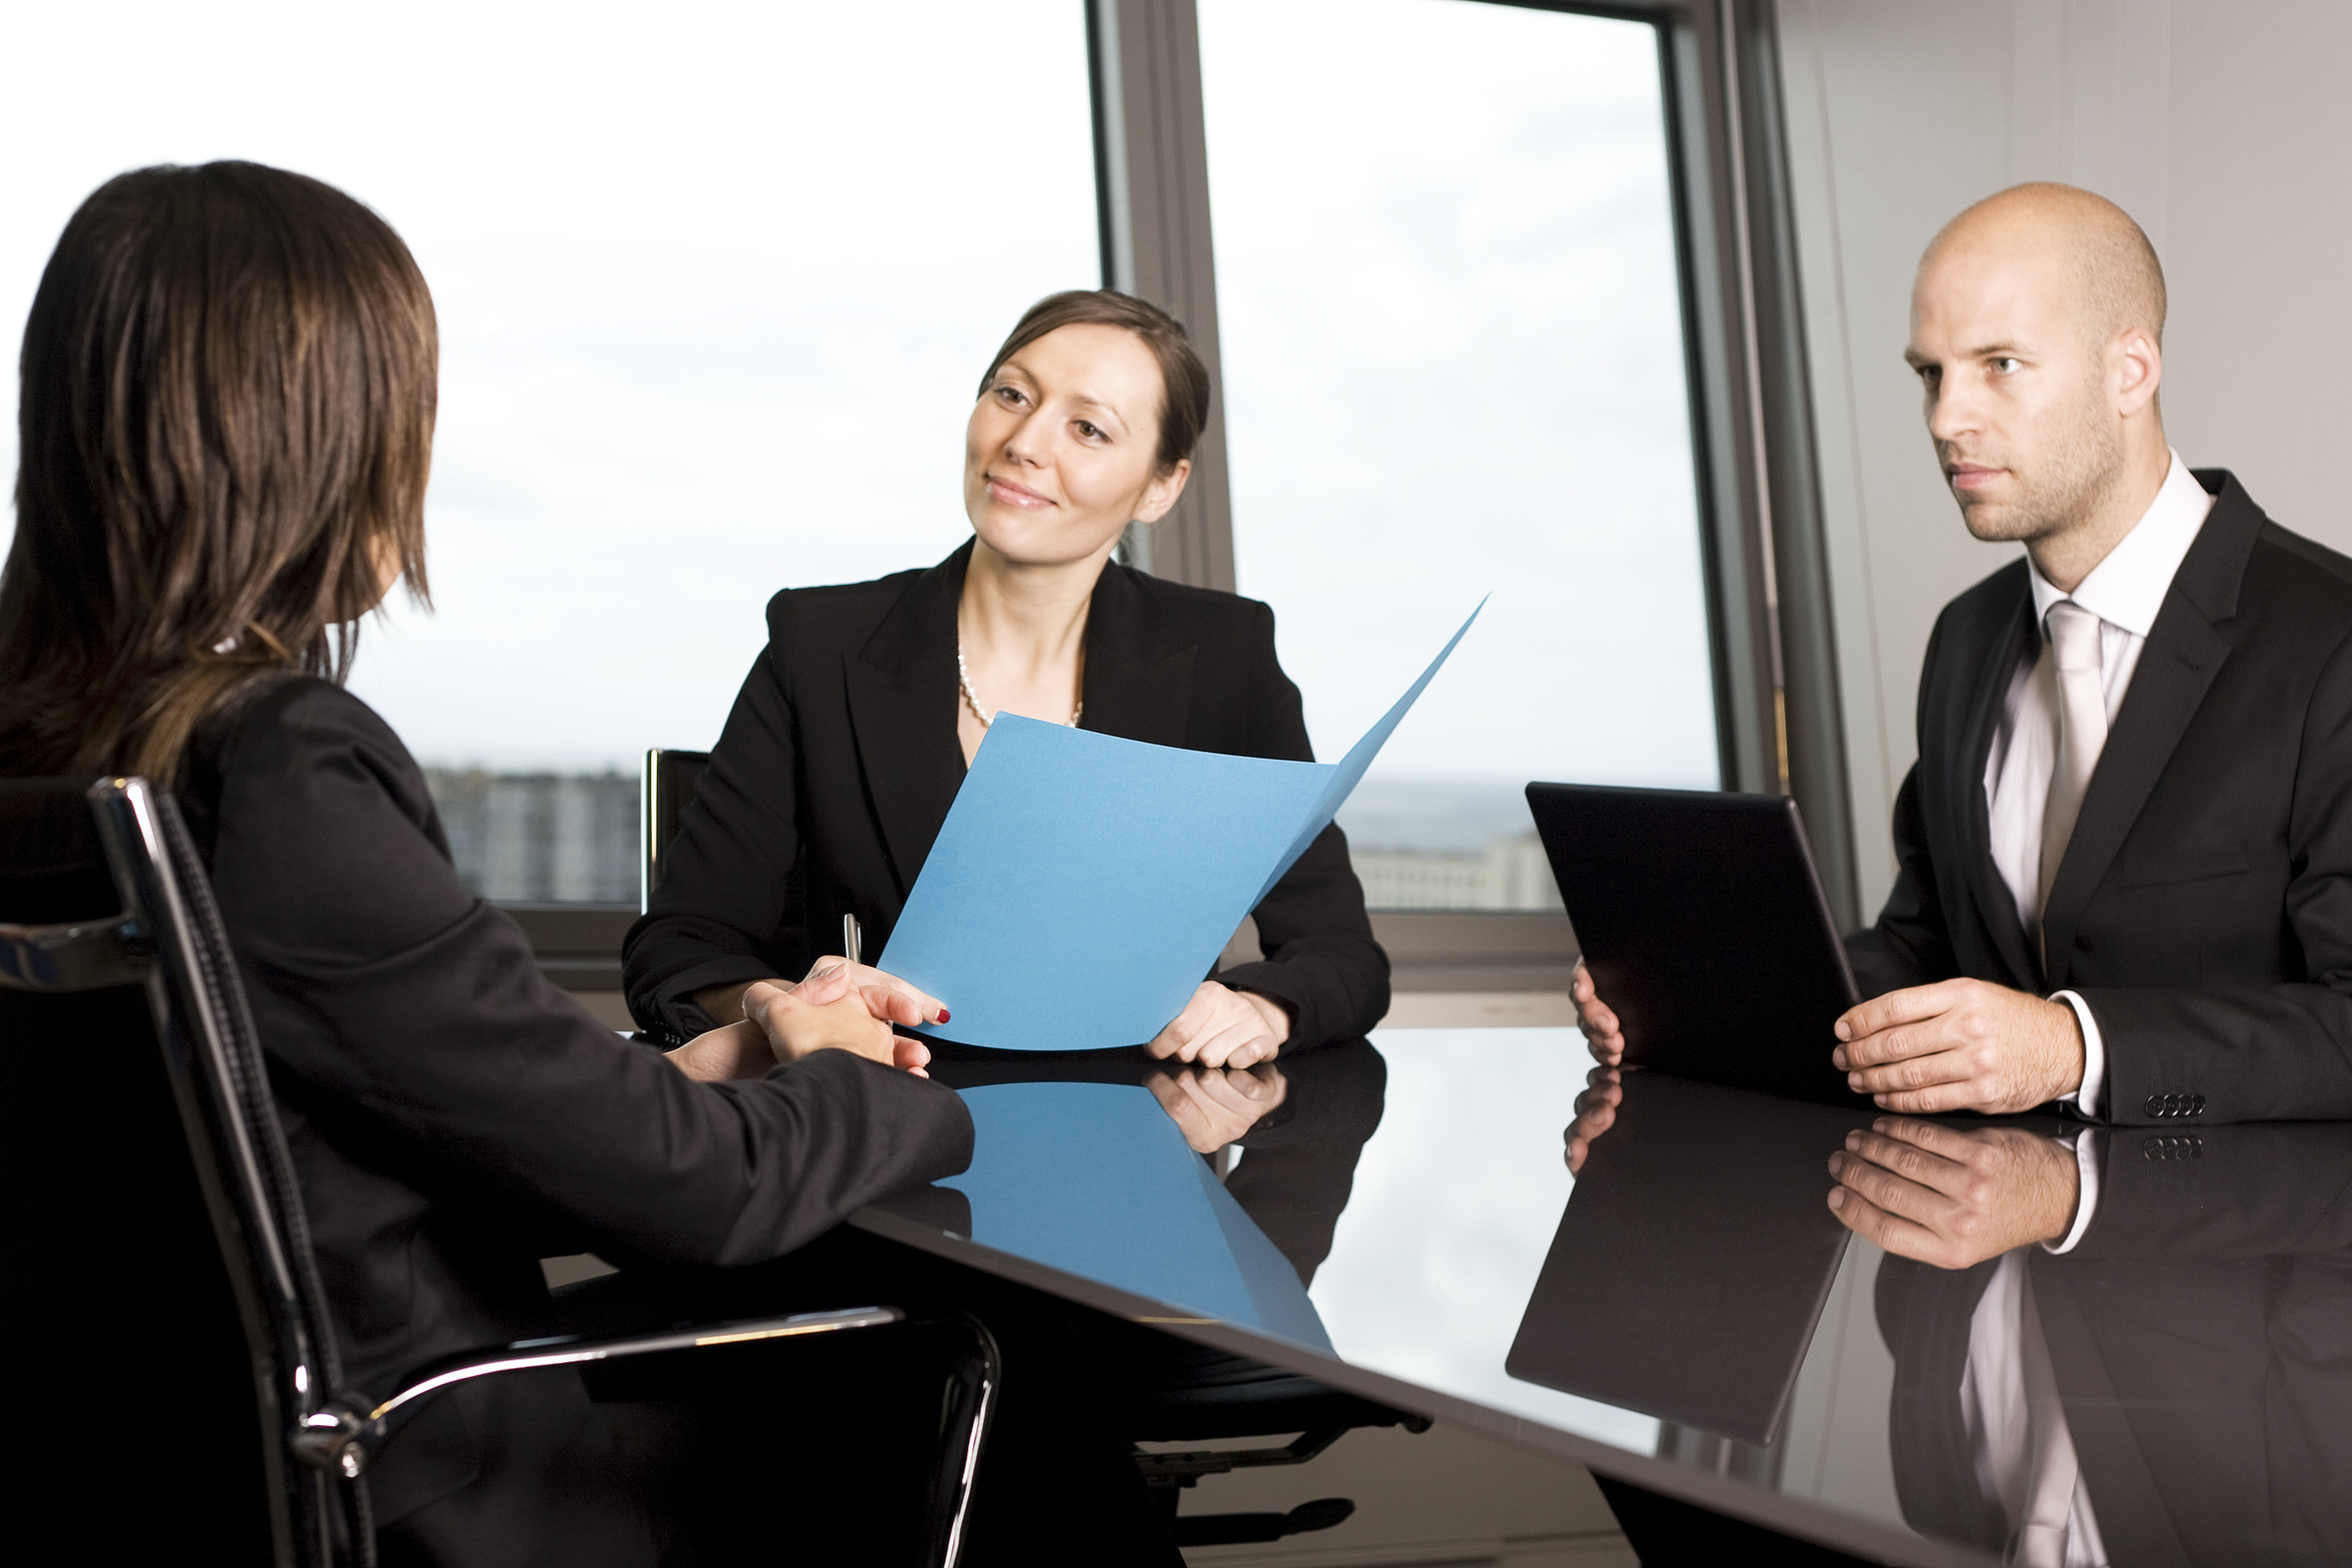 how to act during a job interview yasabe com blog when you finish the interview thank them for the opportunity and be sure you have their contact information on hand